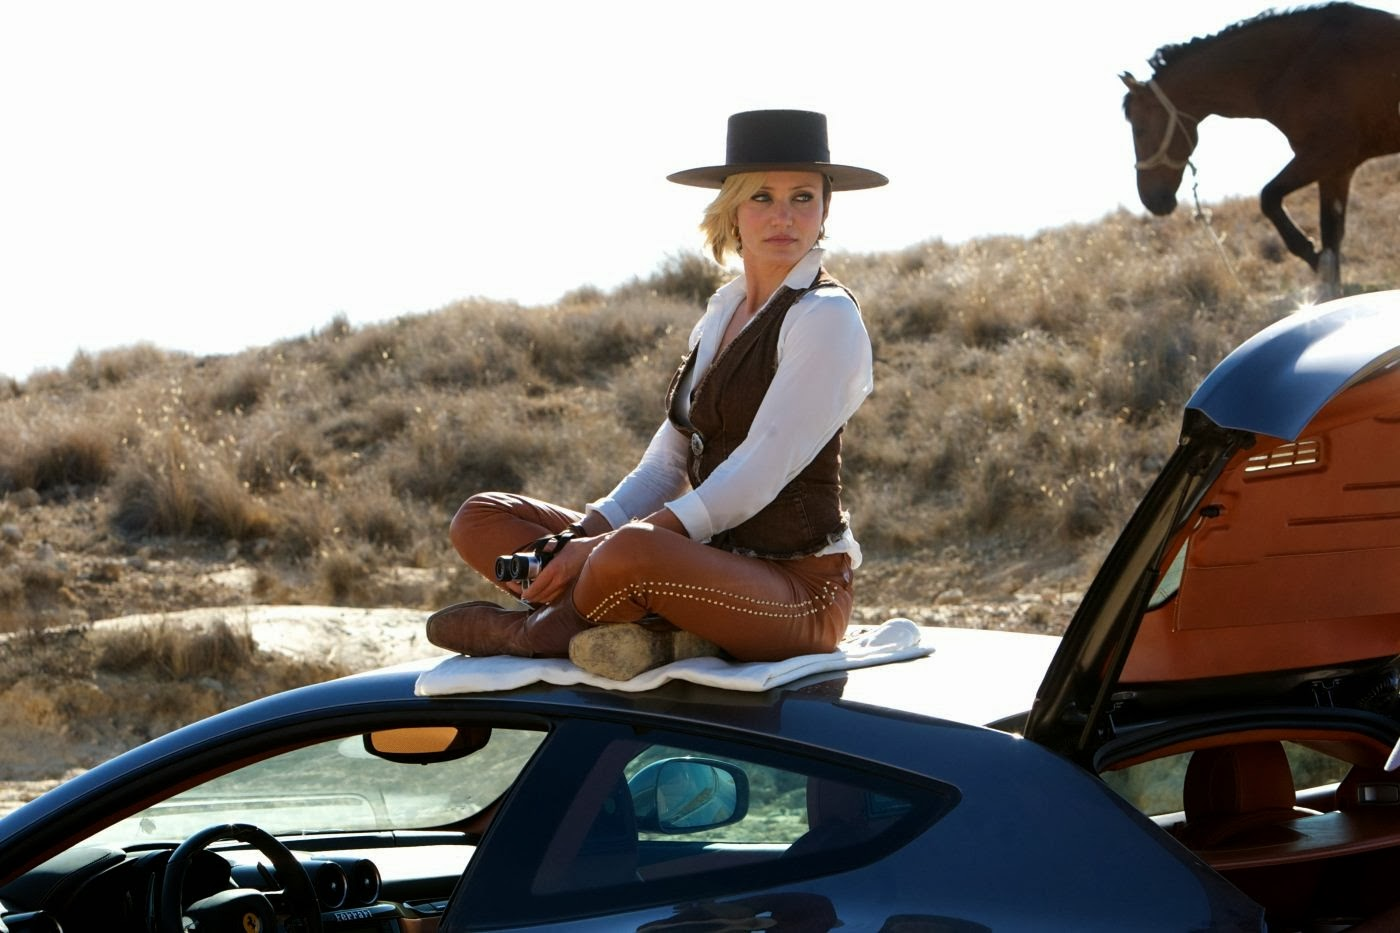 Cameron Diaz as Malkina, sitting on the roof of the car, The Counselor (2013), Directed by Ridley Scott